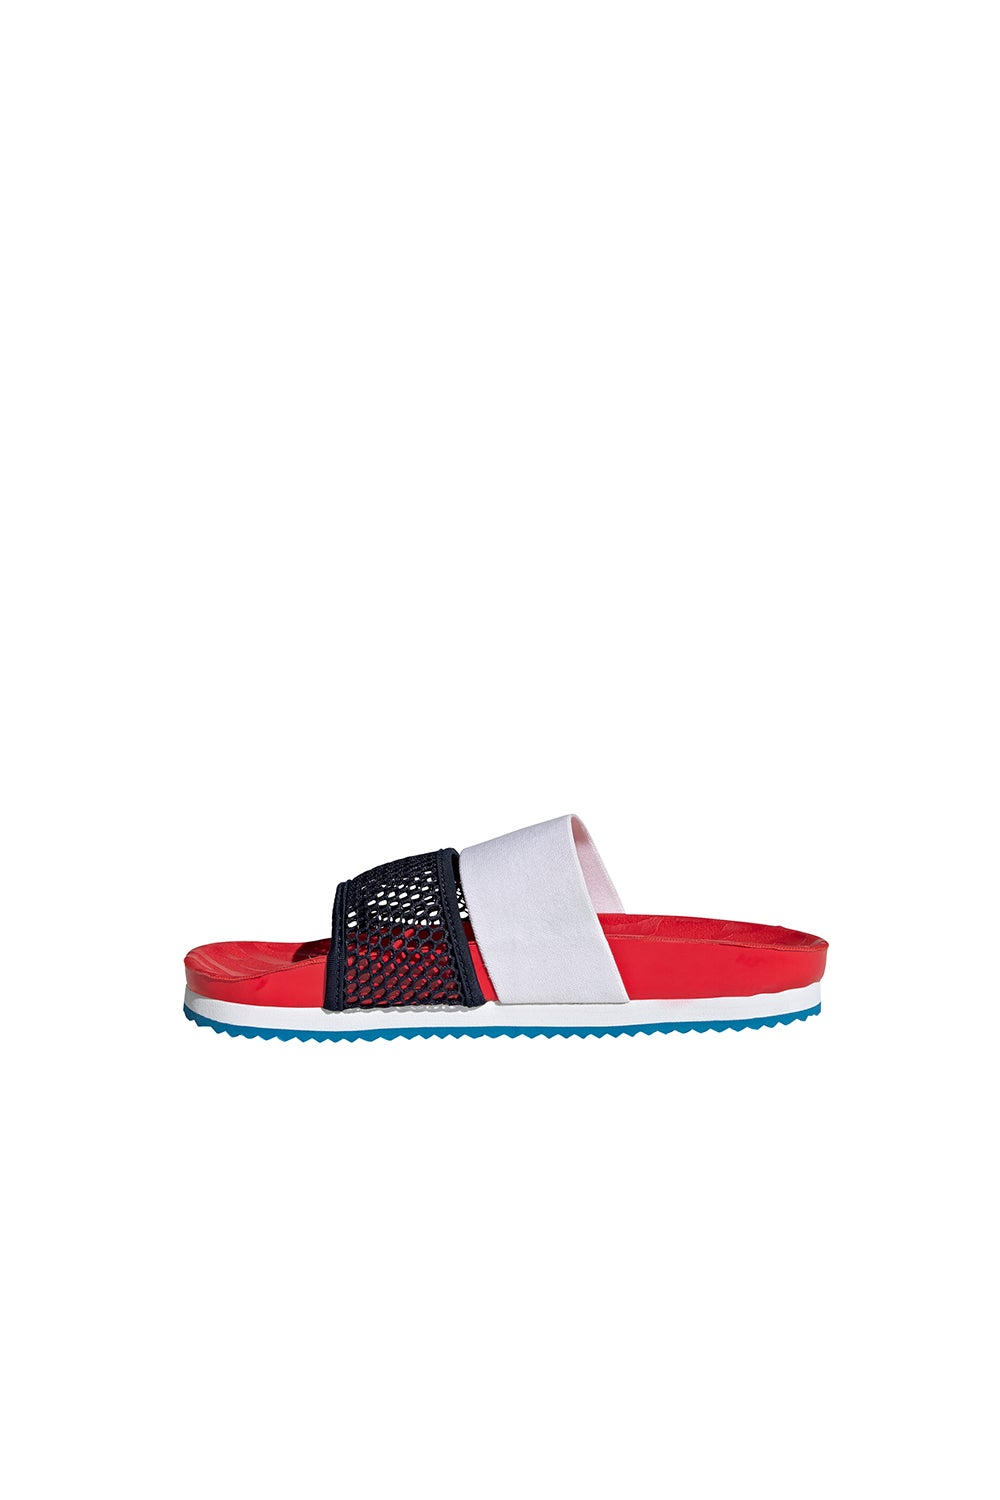 adidas by Stella McCartney Lette Slides Vivid Red